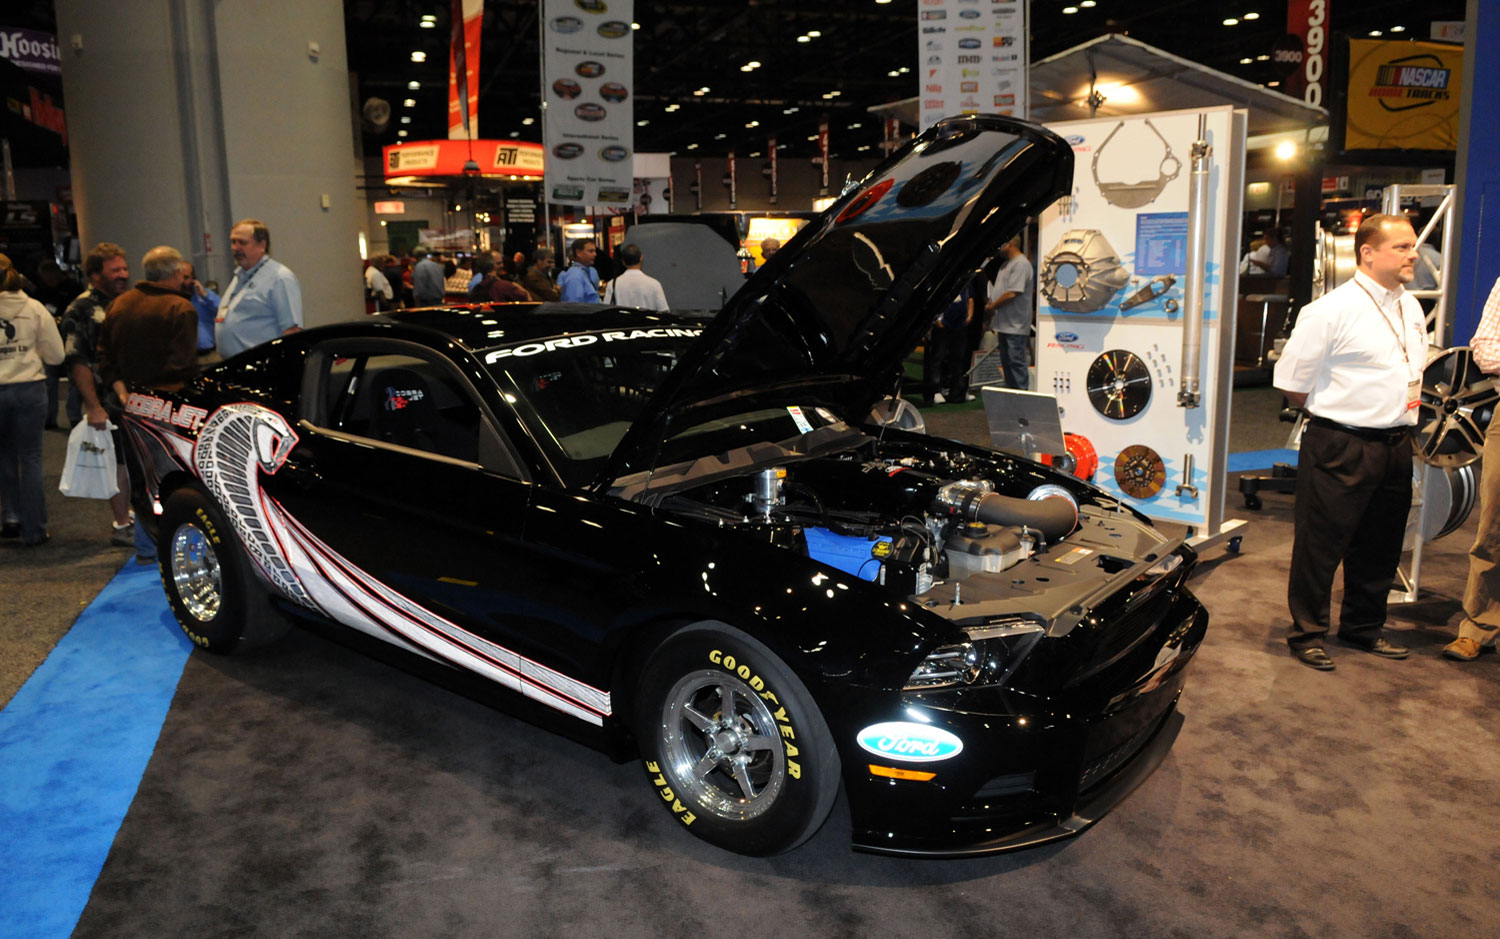 2014 Ford Mustang Cobra Jet Priced at $97,990 | Cars Model 2013 2014